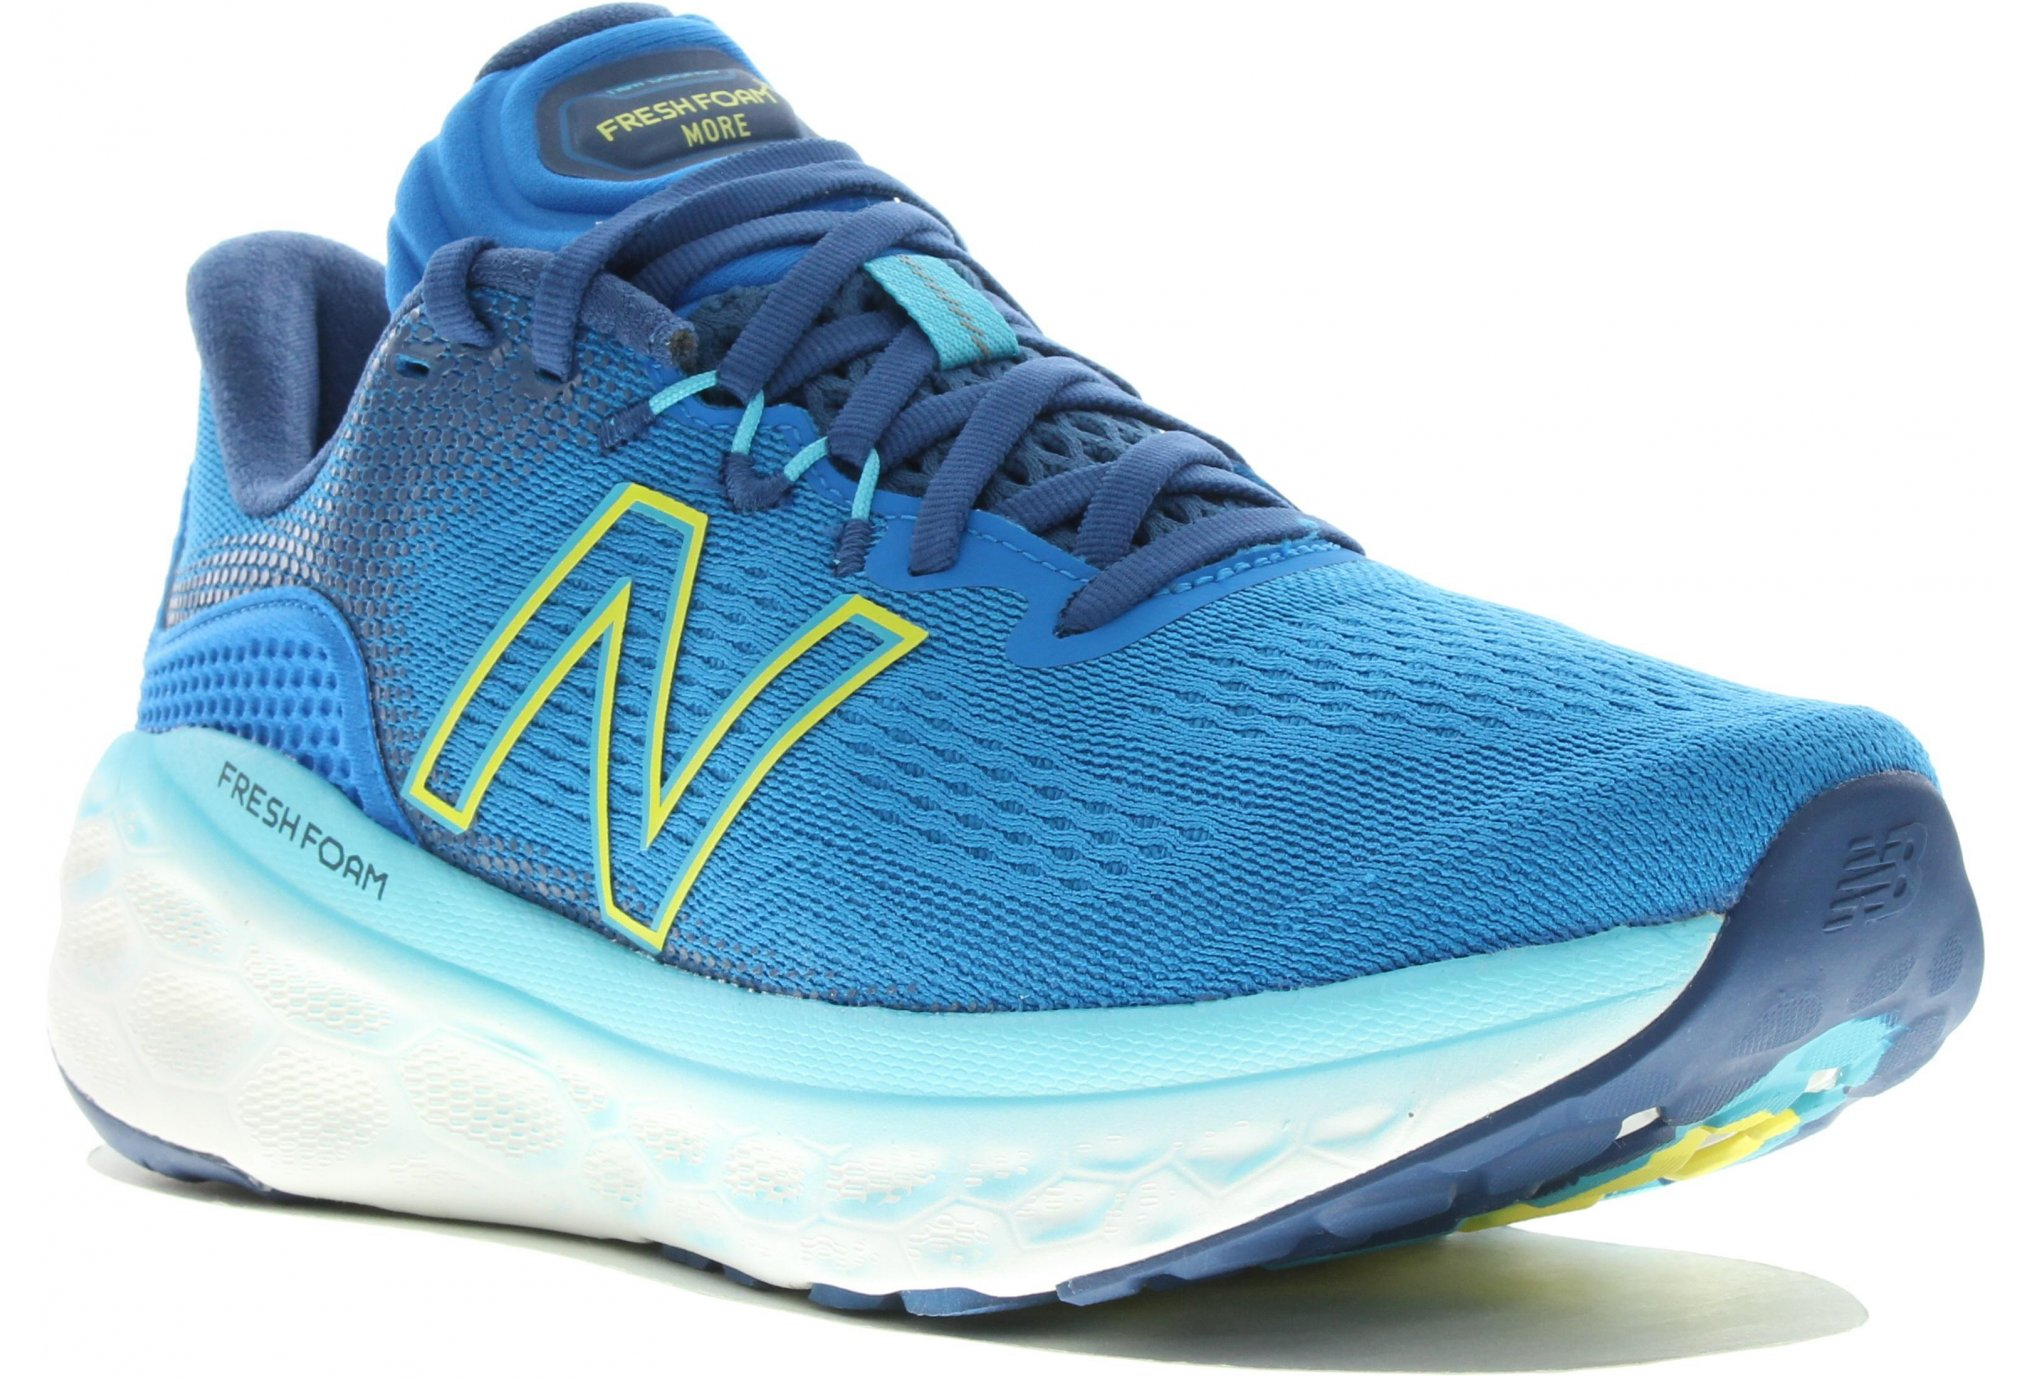 New Balance Fresh Foam More V3 M Chaussures homme